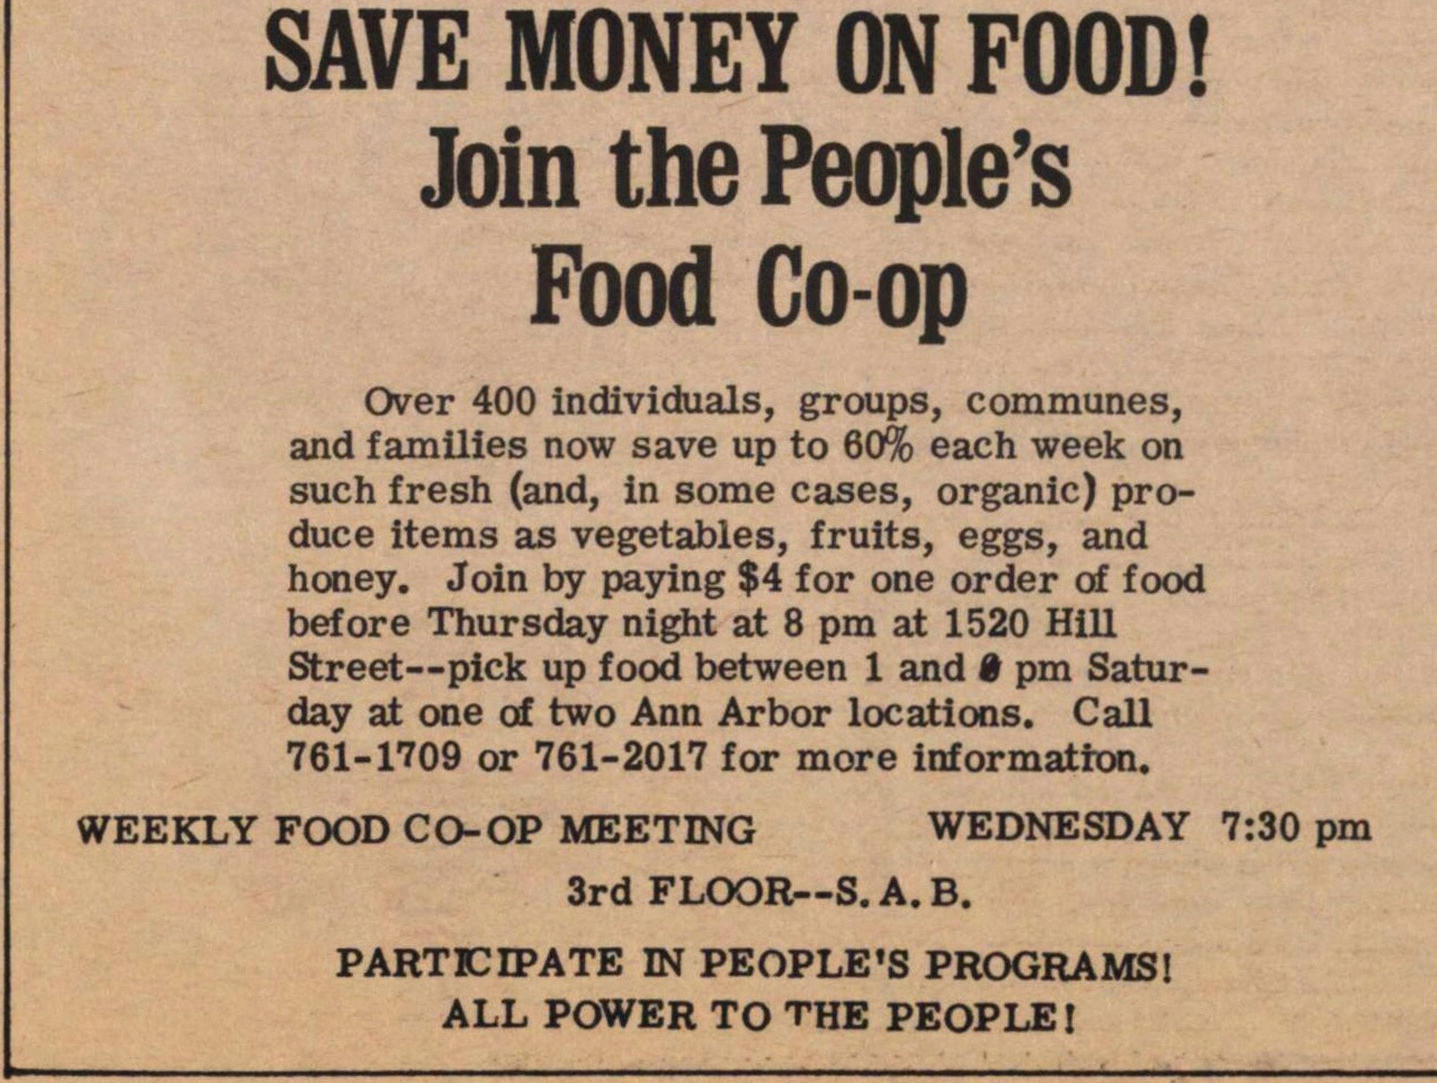 Save Money On Food! Join The People's Food Co-op image